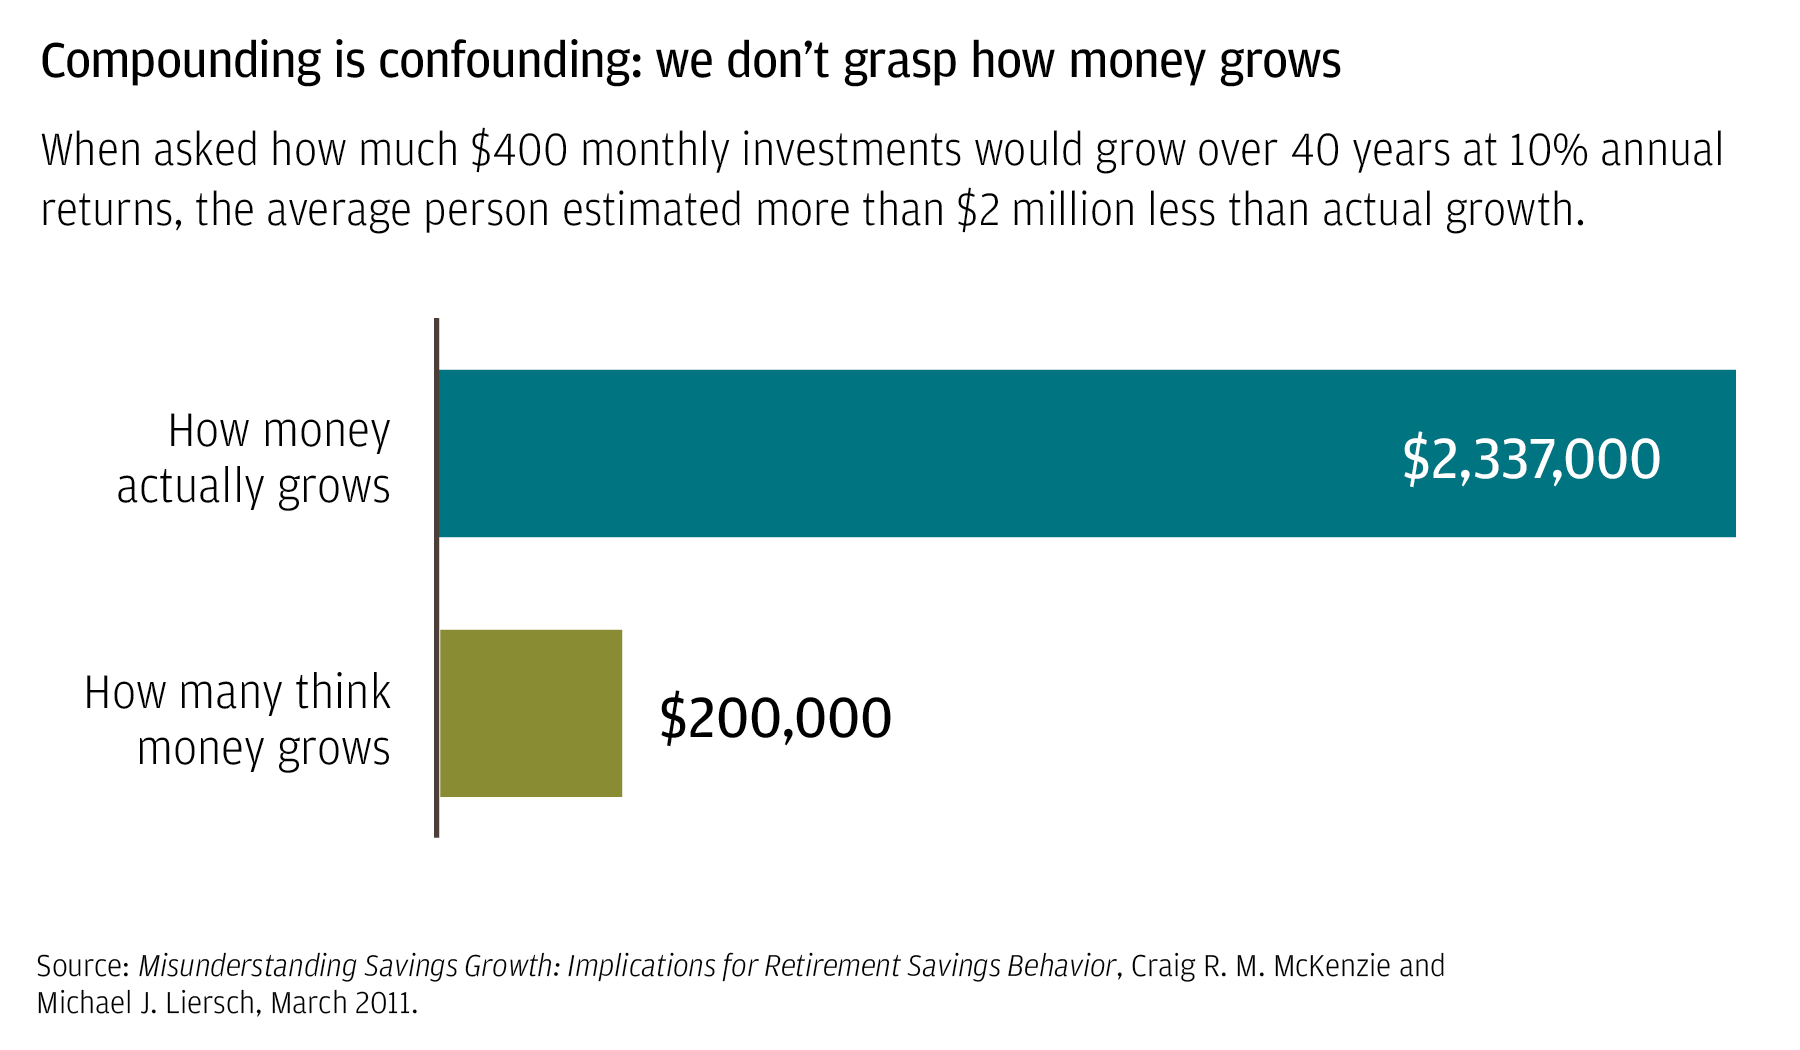 Compounding is confounding: We don't grasp how money grows